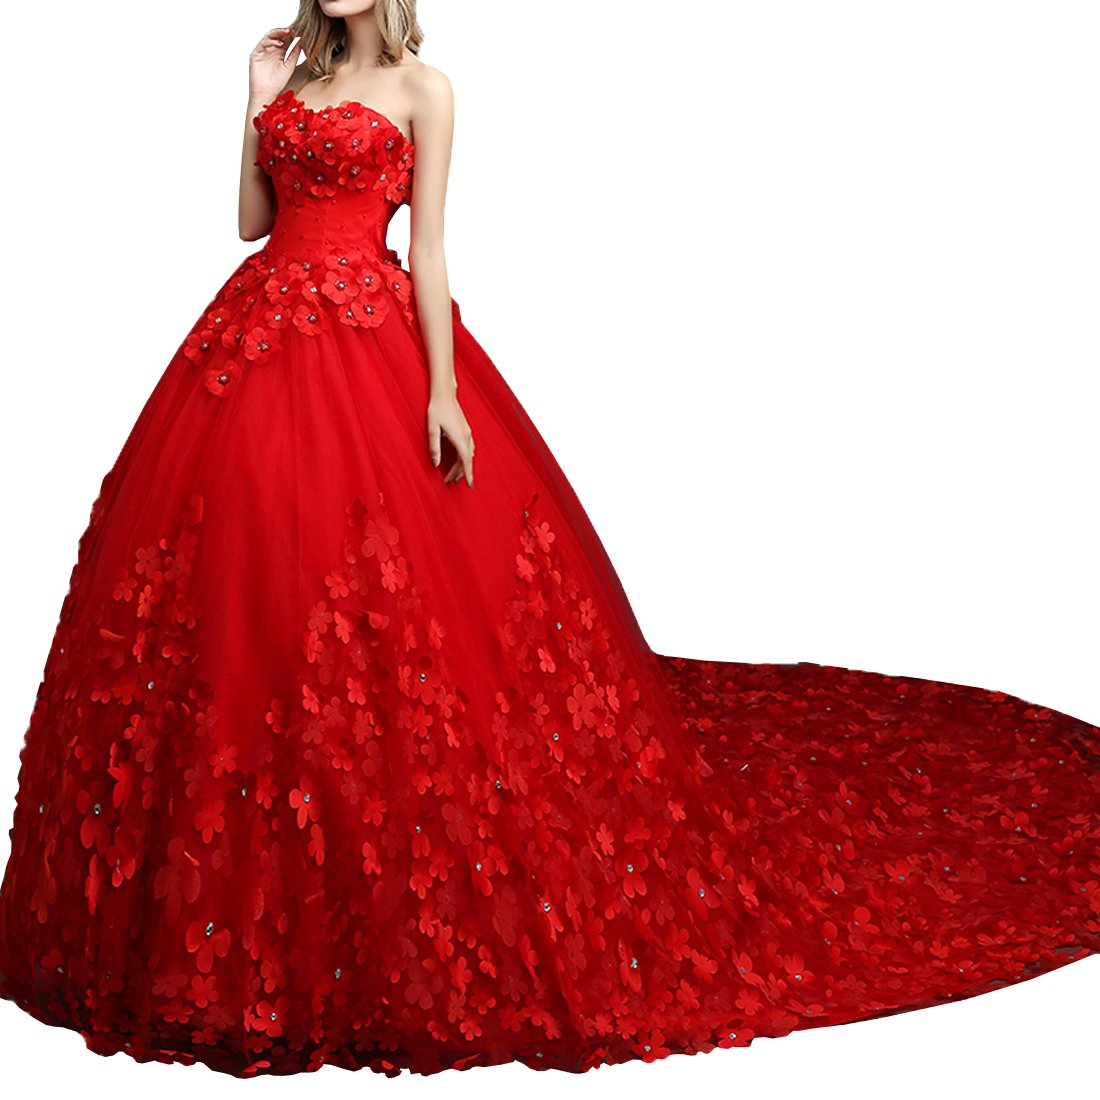 Partiss Women's Floor Length/Train Strapless Wedding Dress(Chinese XL Red 1.5Meter Train)